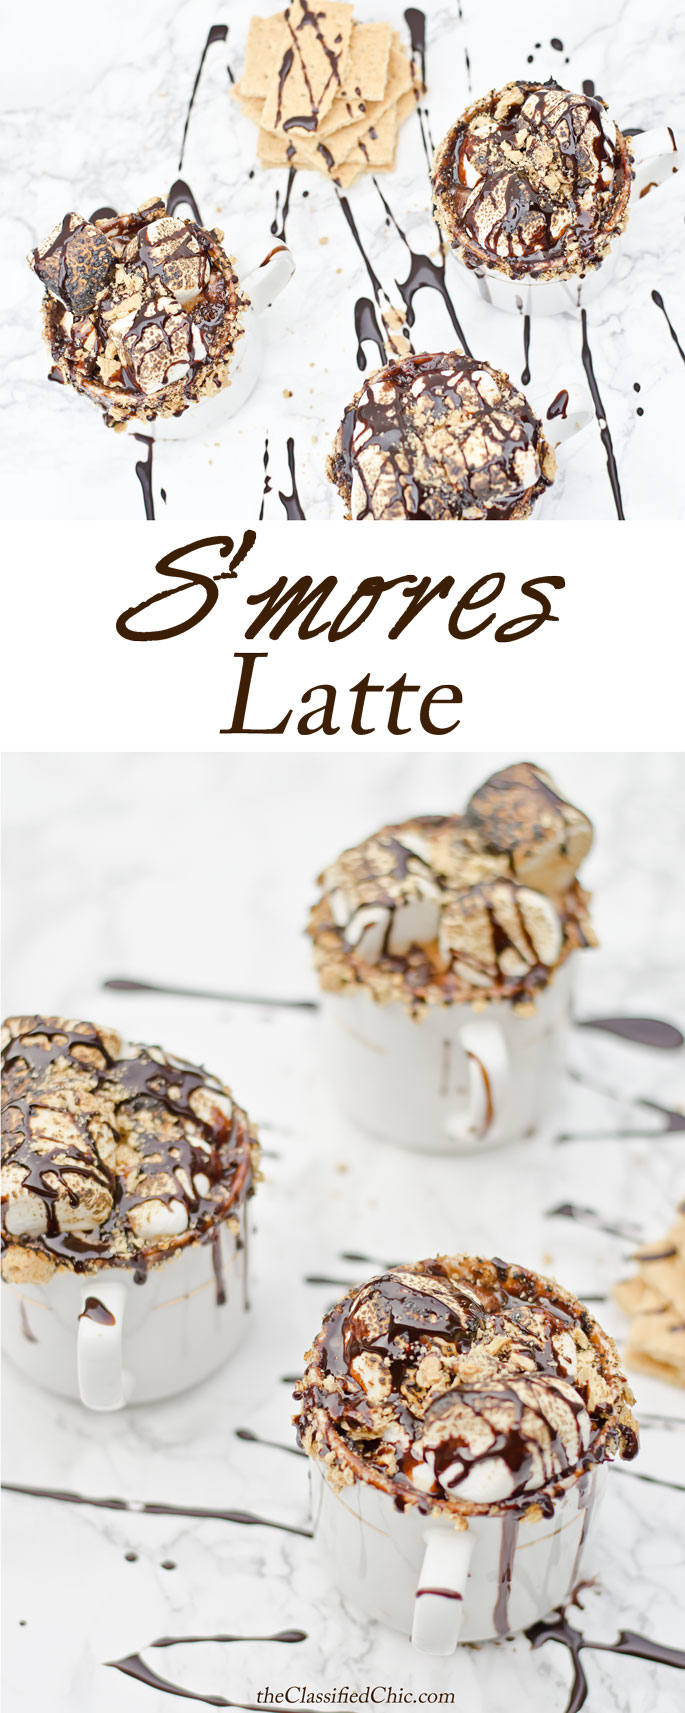 How-to-make-a-S'mores-Latte-4